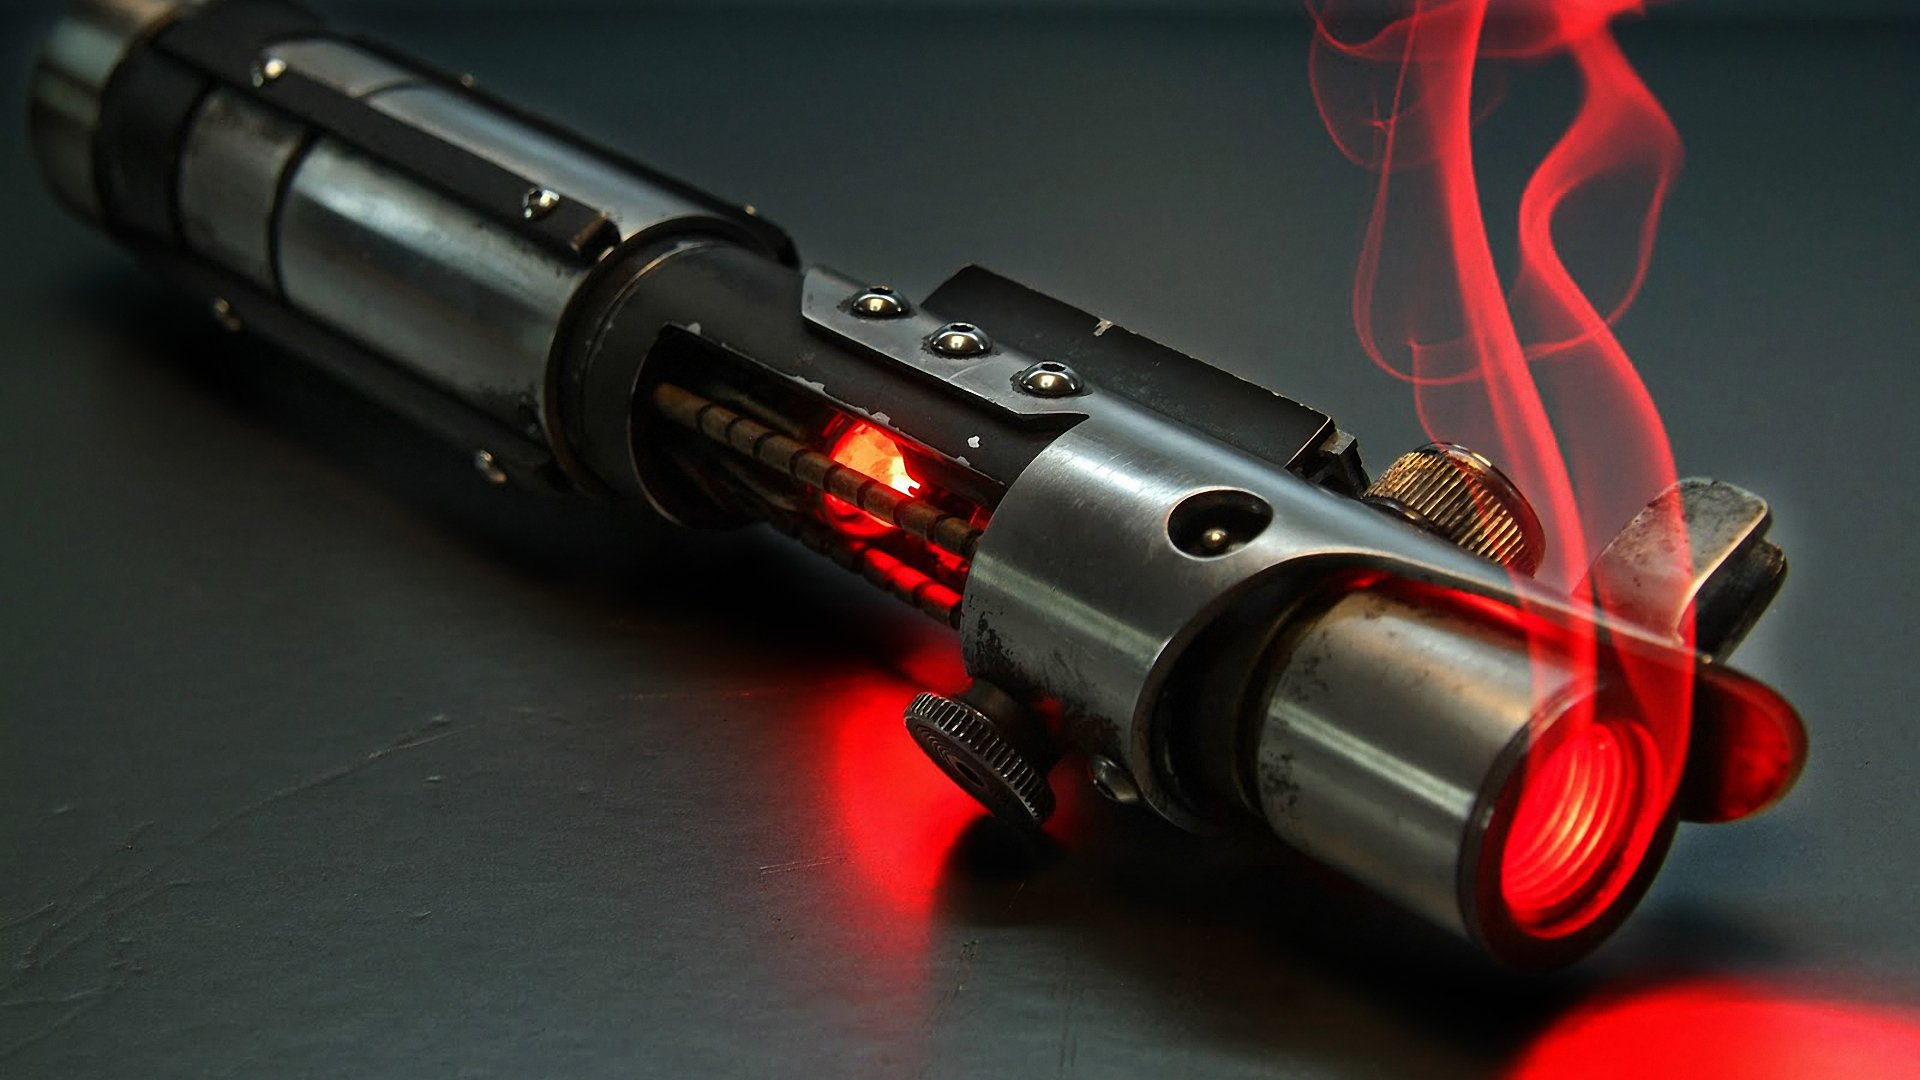 Sci Fi - Star Wars  Lightsaber Red Sci Fi Wallpaper